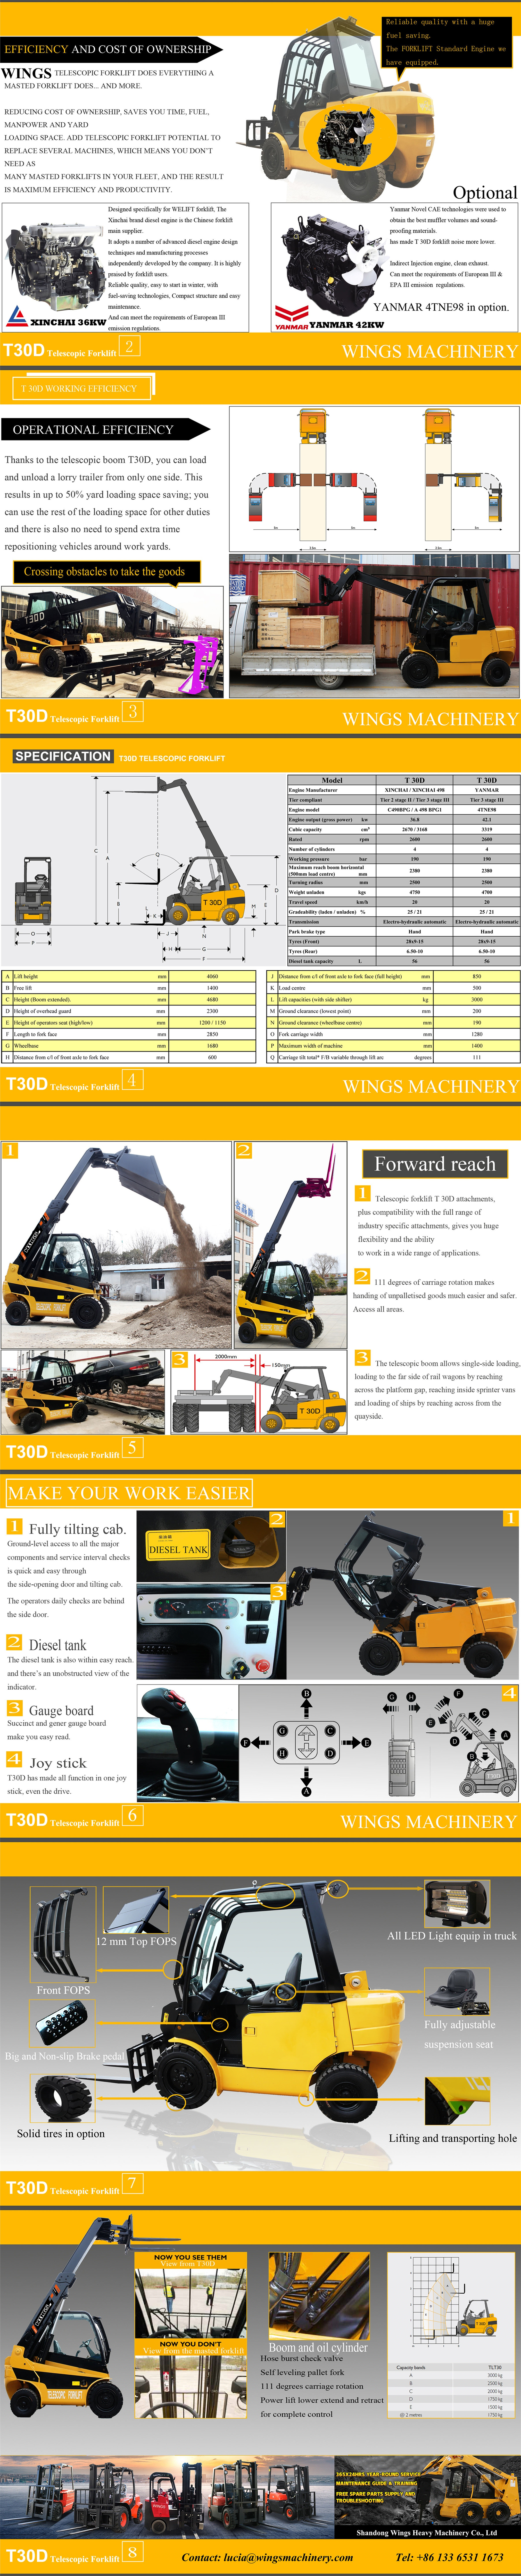 Specifications of Telescopic Forklift